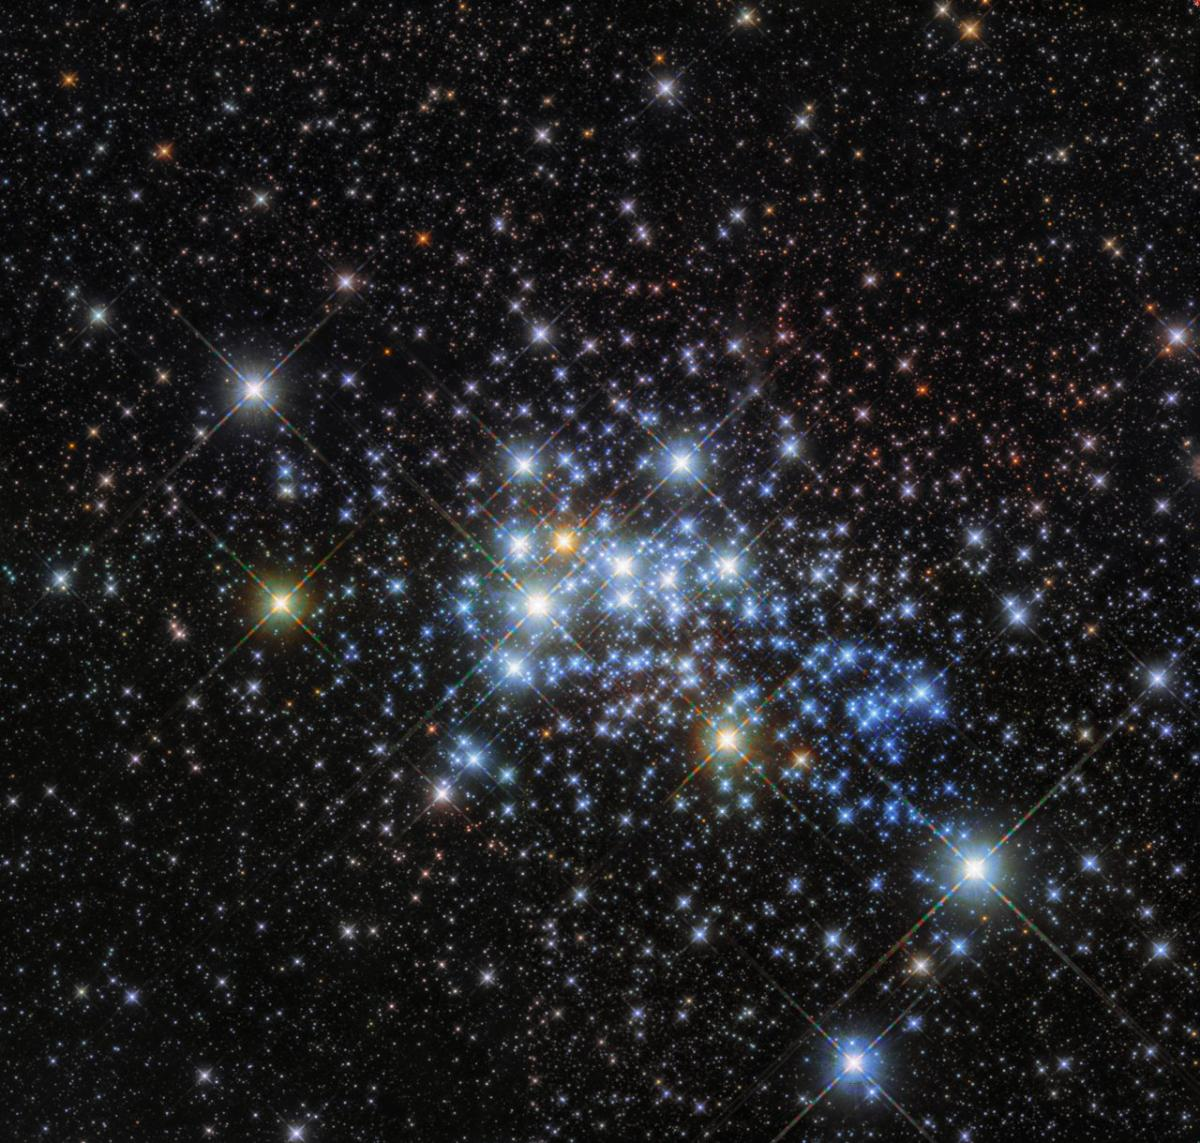 Biggest Stars In The Universe: Westerlund 1-26, A Red Hypergiant Nearby, Could Be Among Them